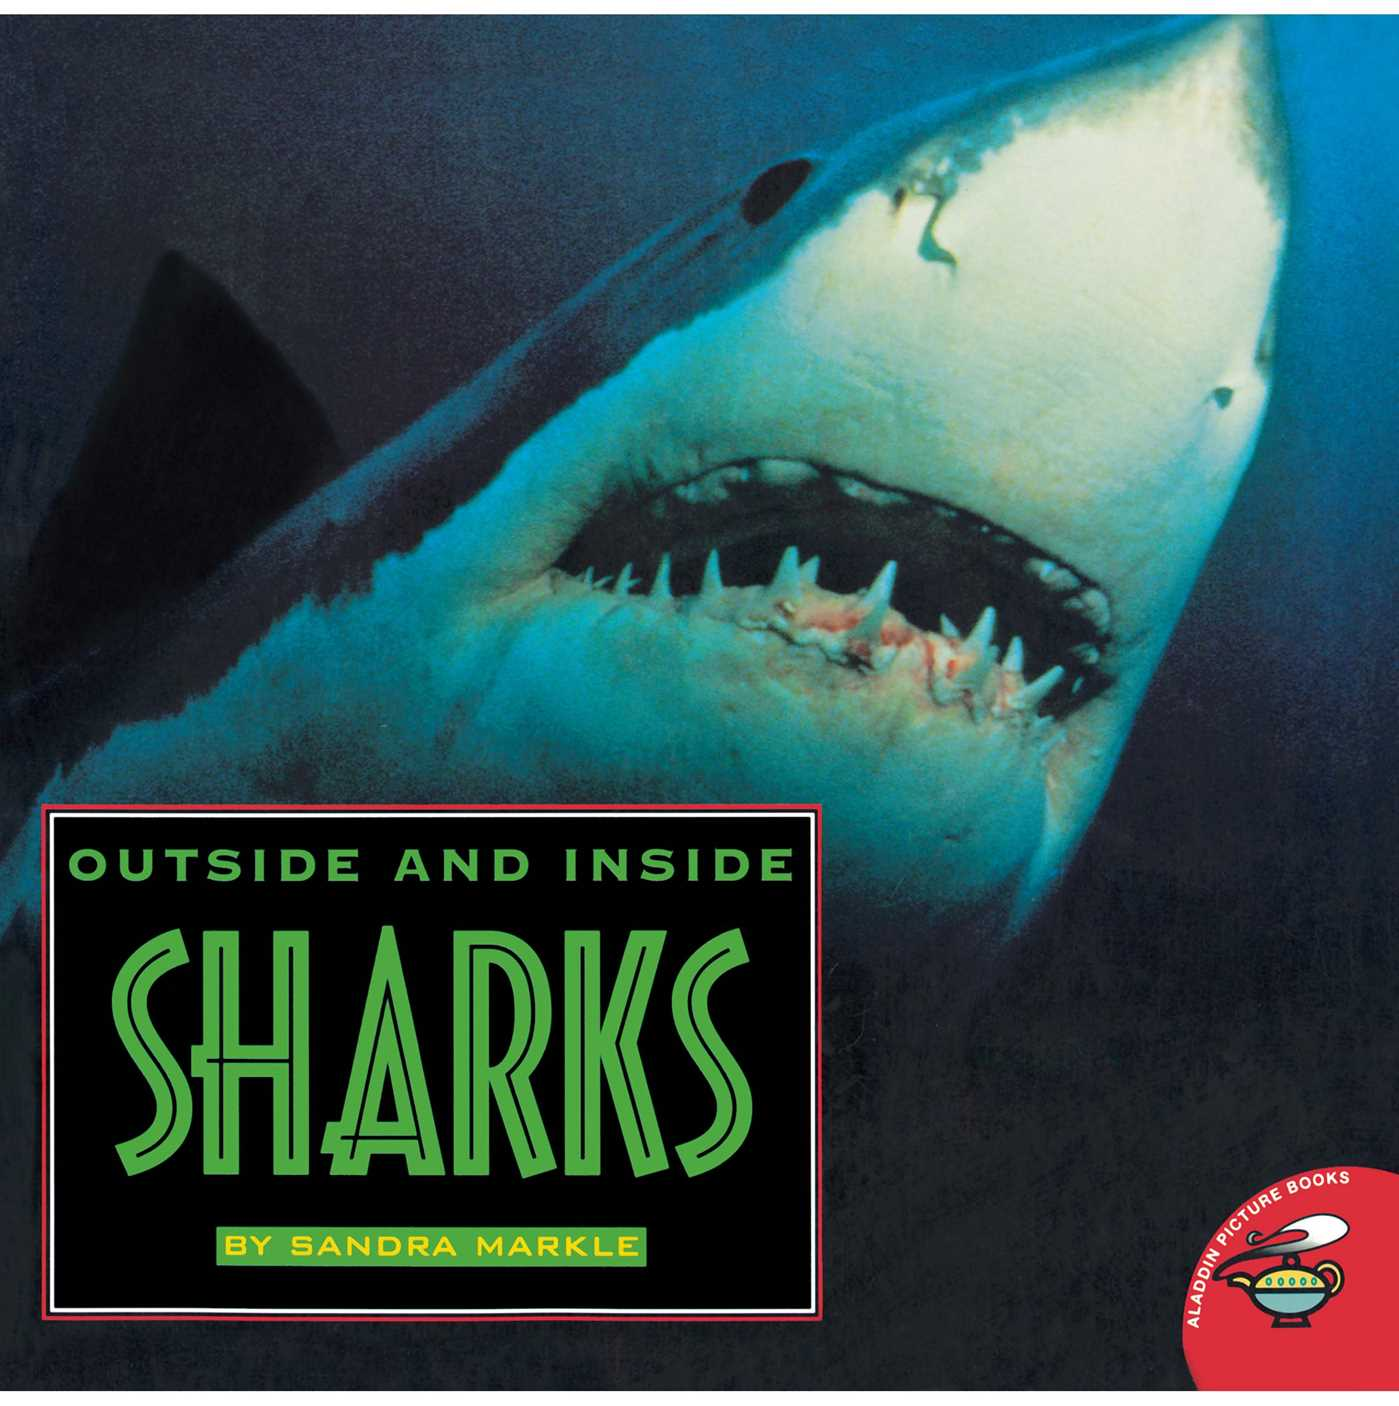 Outside and inside sharks 9780689826832 hr